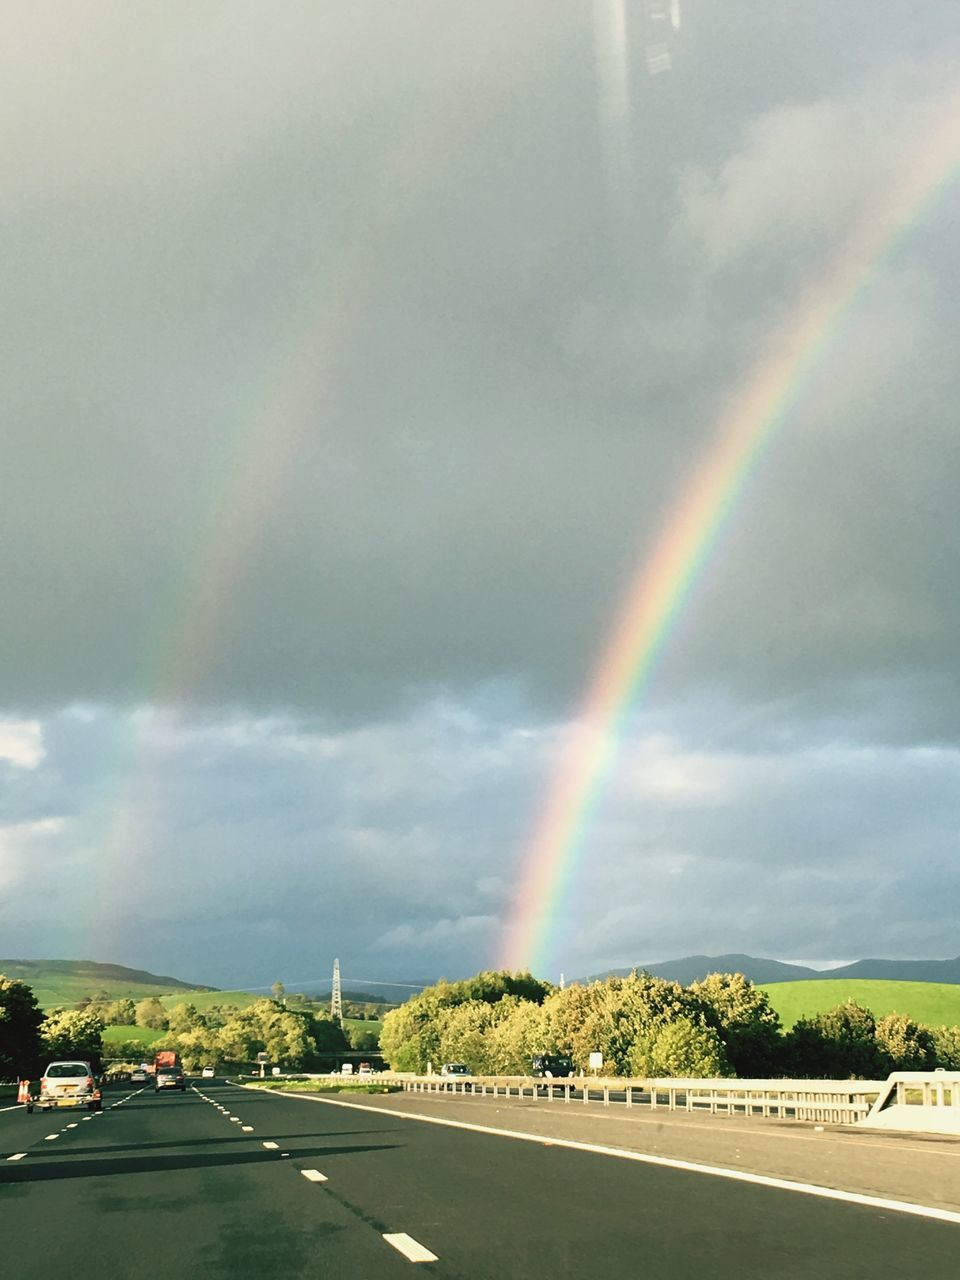 rainbow, double rainbow, cloud - sky, sky, scenics, weather, road, multi colored, beauty in nature, tranquility, day, nature, outdoors, tranquil scene, no people, tree